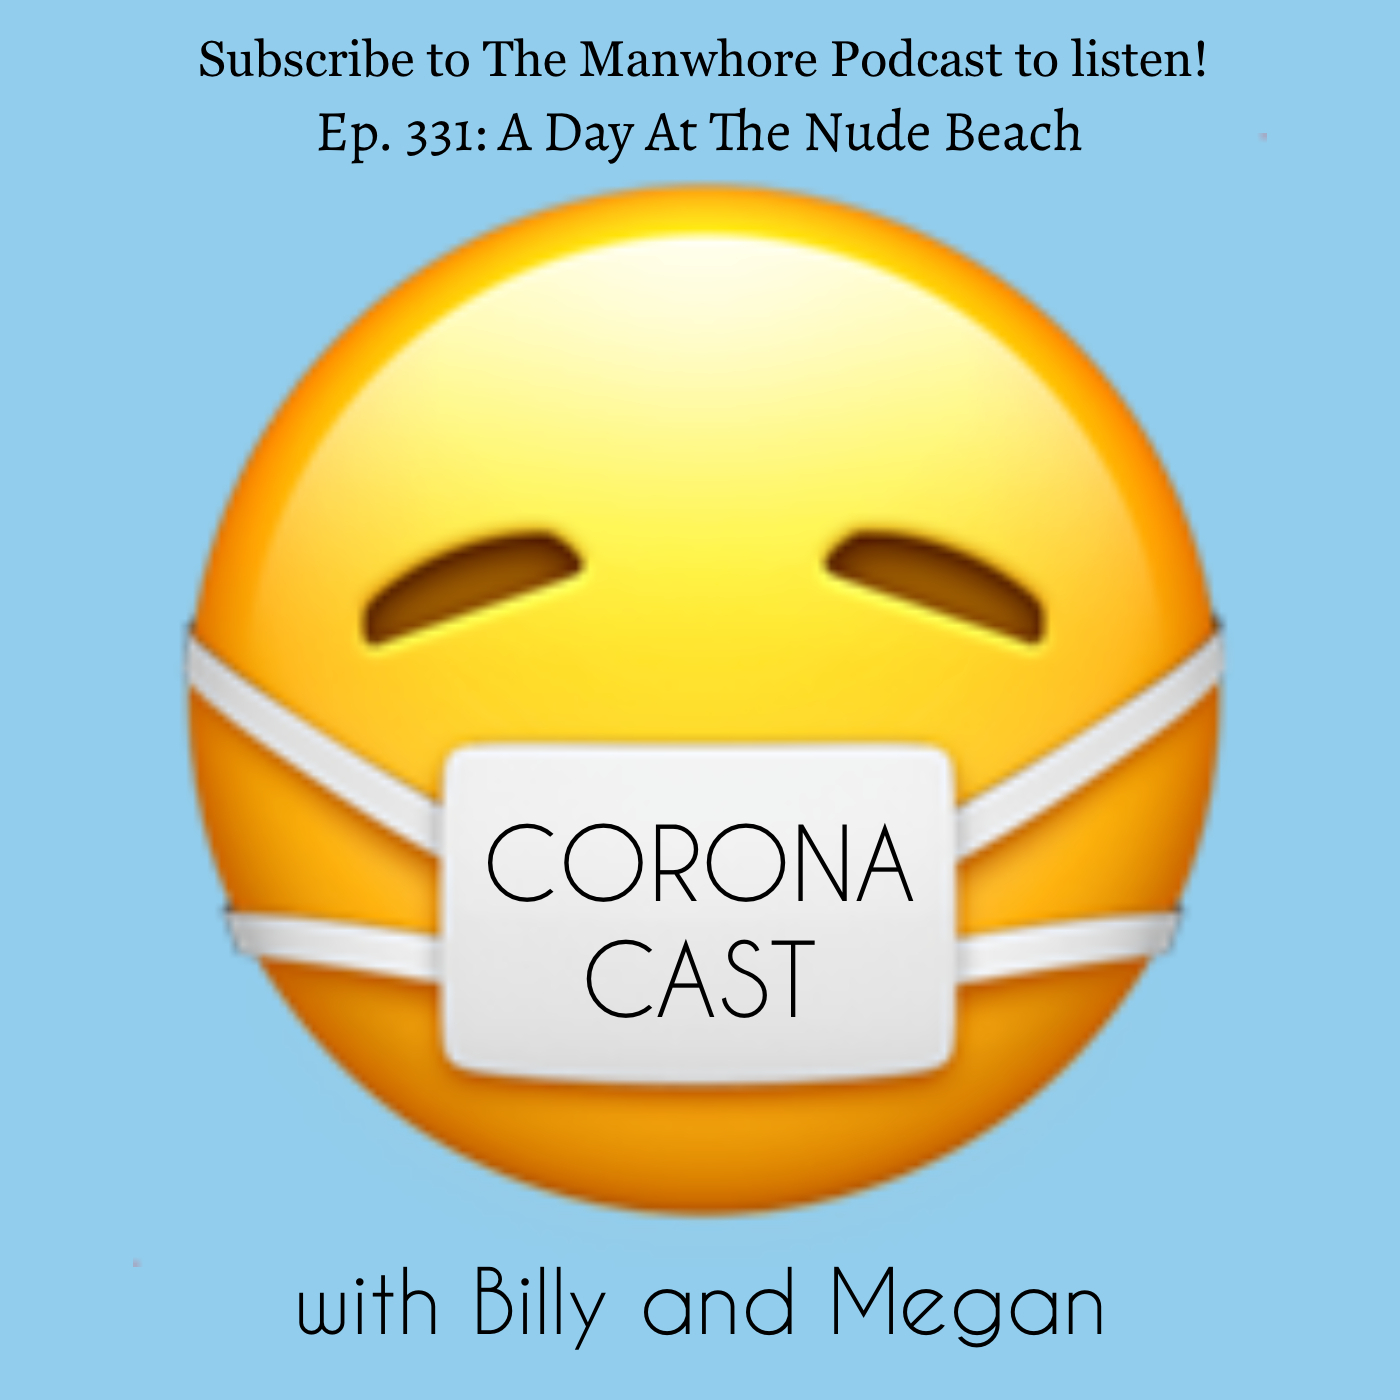 The Manwhore Podcast: A Sex-Positive Quest - Ep. 331: Corona Cast Part 11 - A Day At The Nude Beach